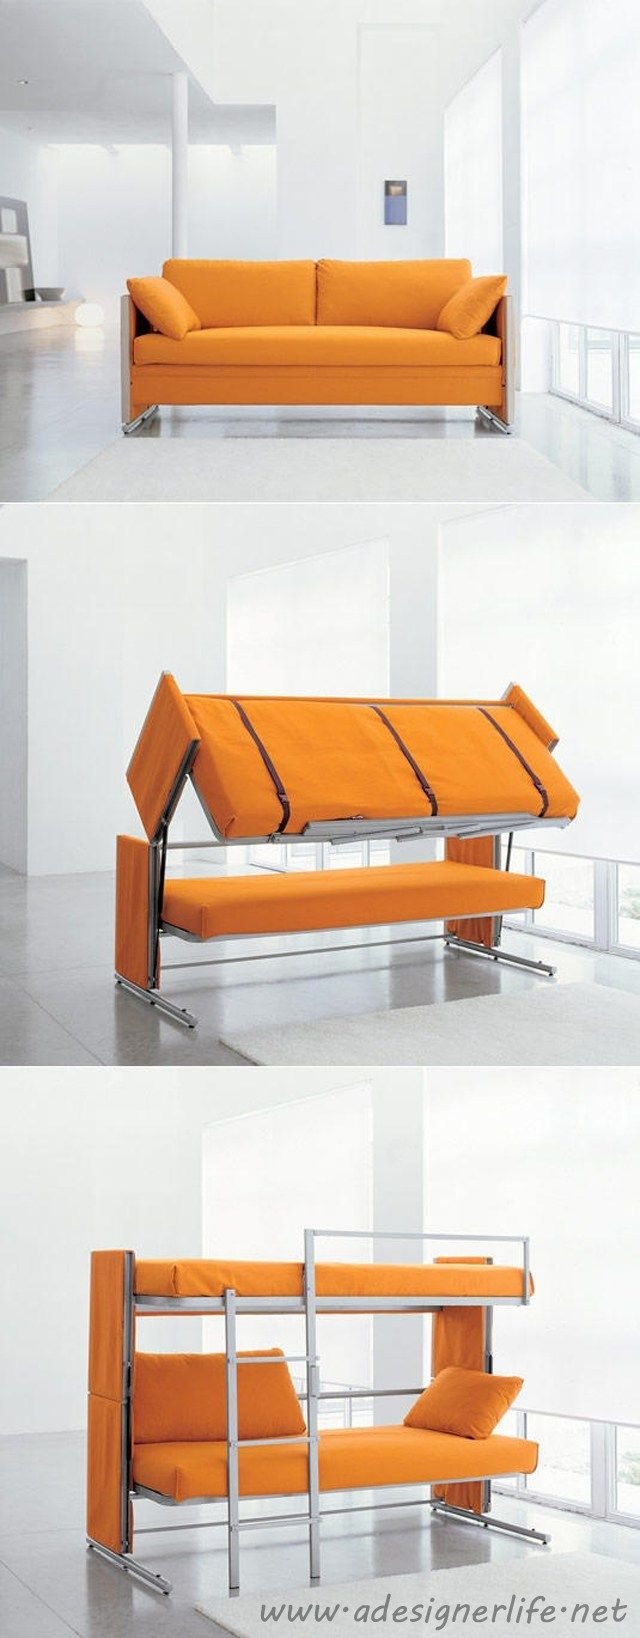 Convertible couch bunk bed - Awesome Products The Most Amazing Convertible Furniture Ever Bunk Bedssofa